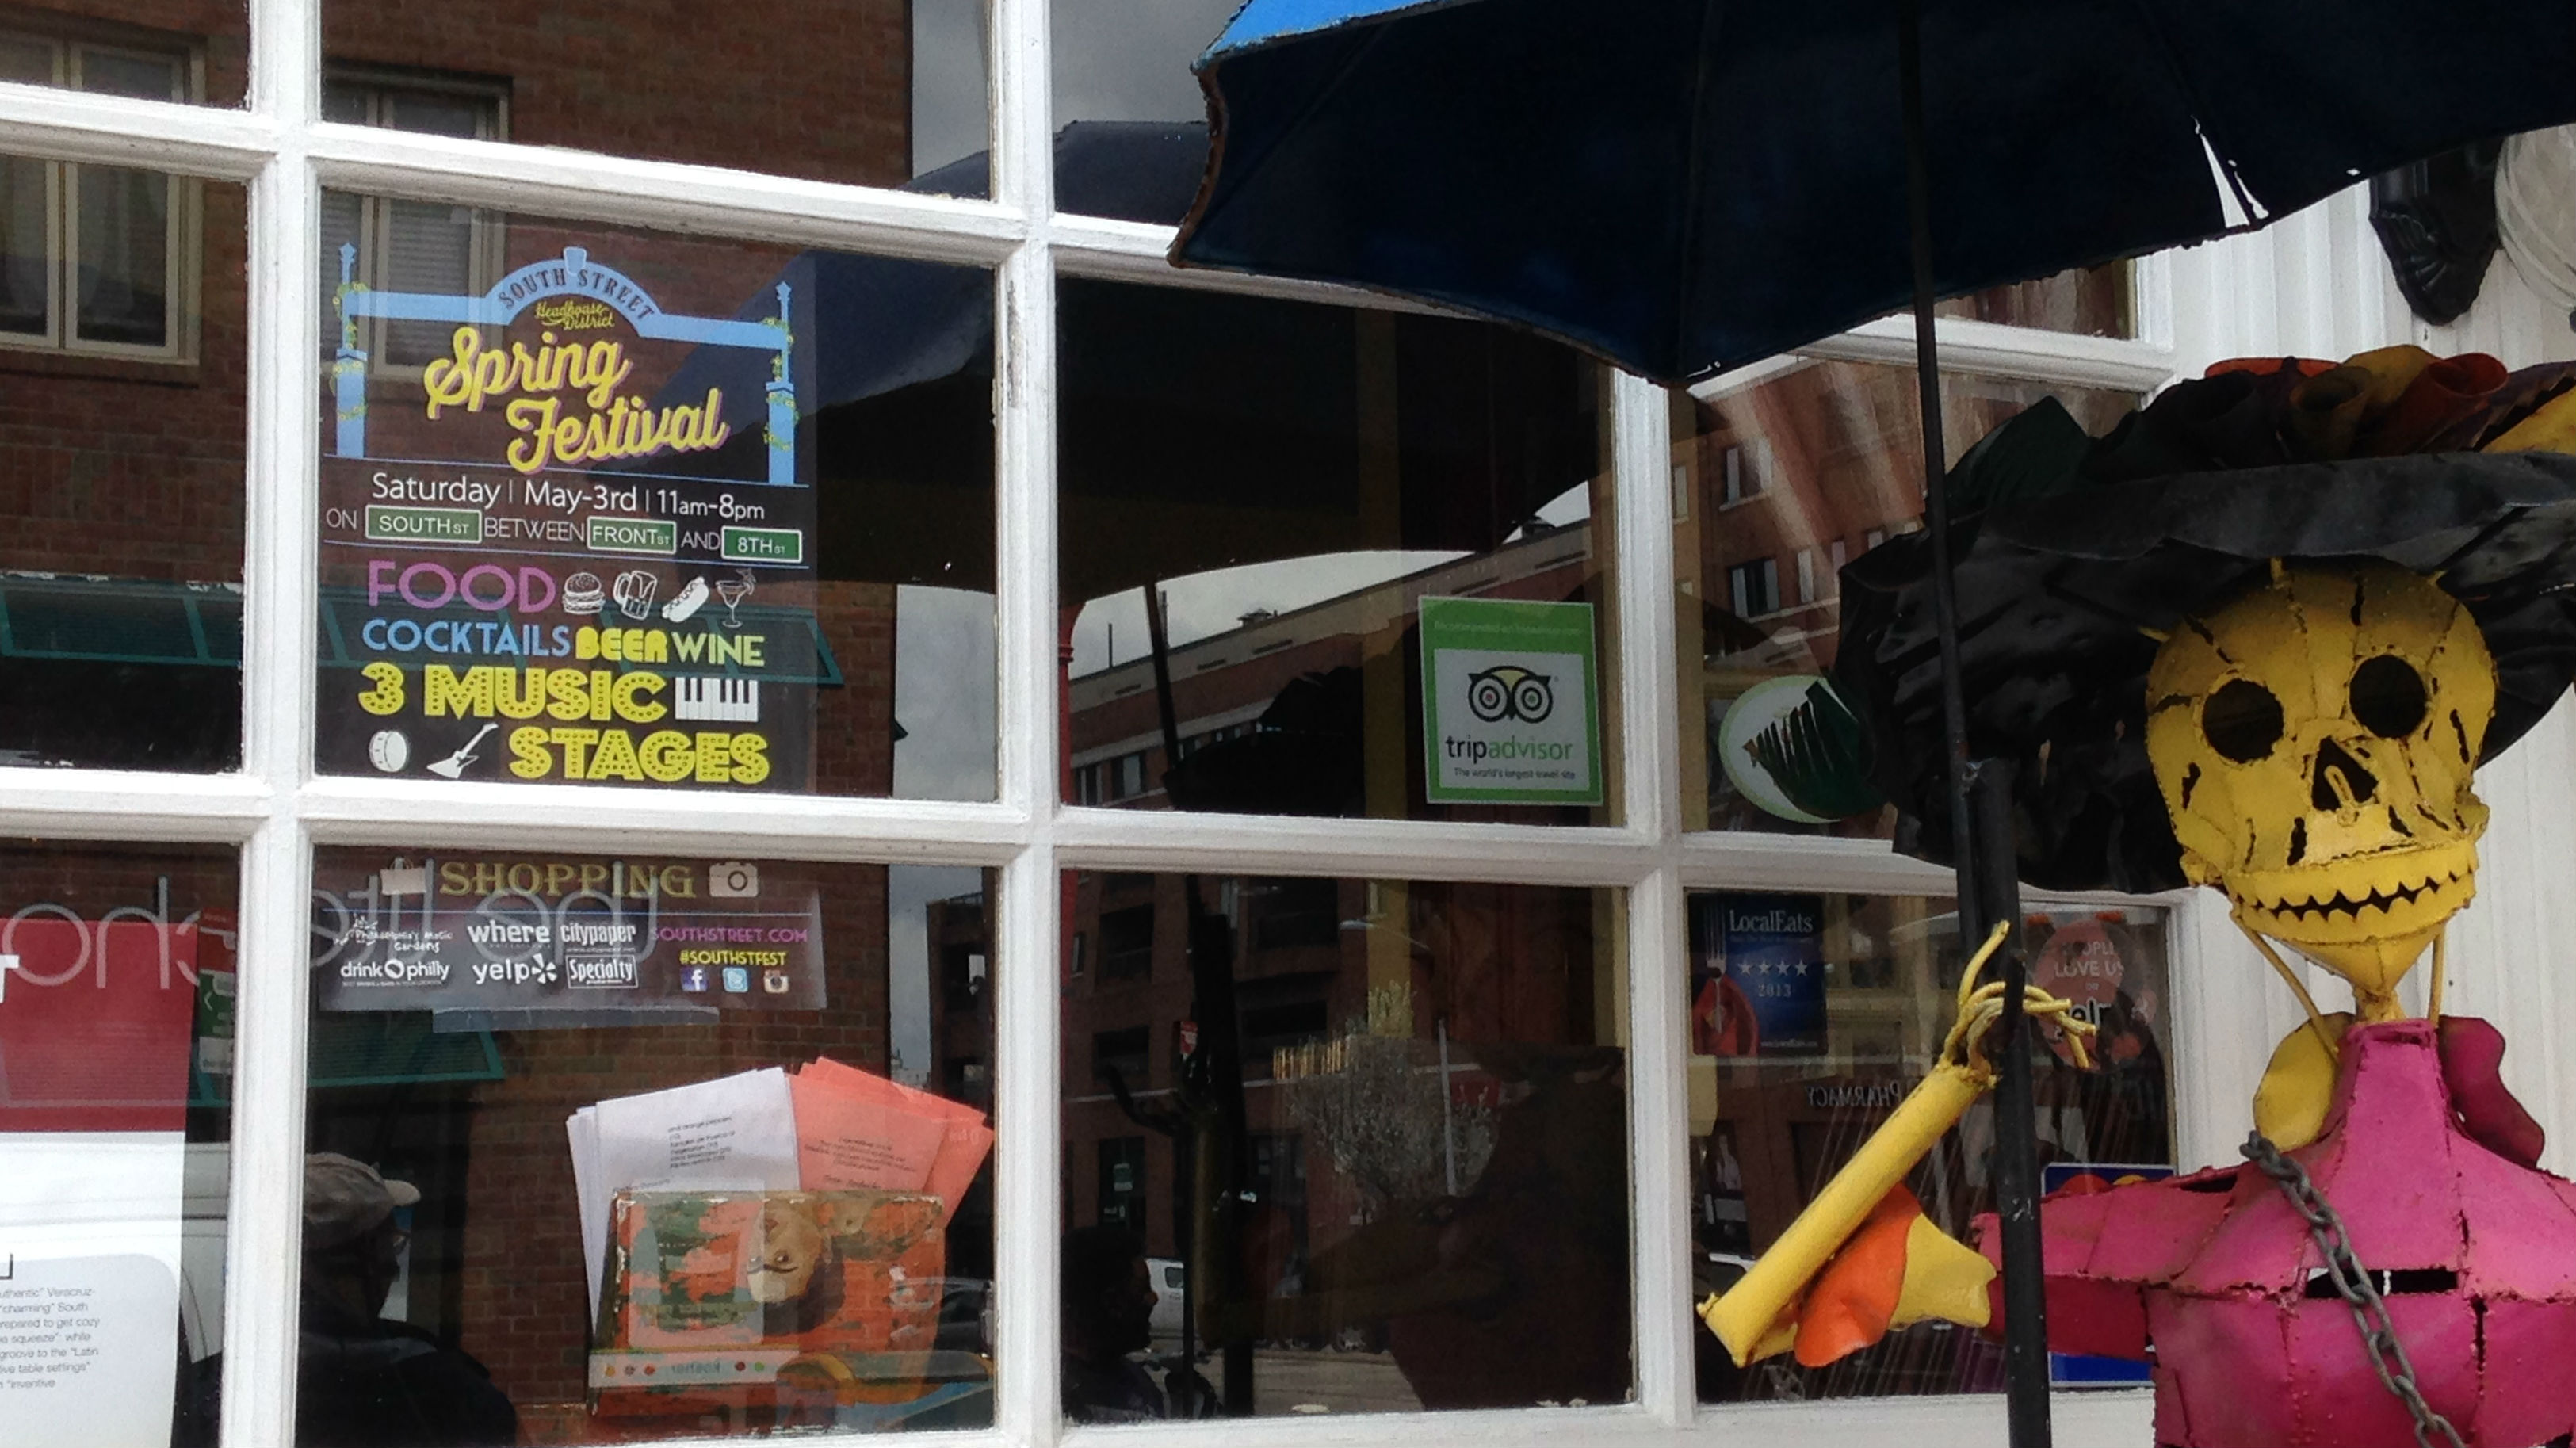 Stores along South Street are gearing up for the Spring Festival (Credit: Andrew Kramer)